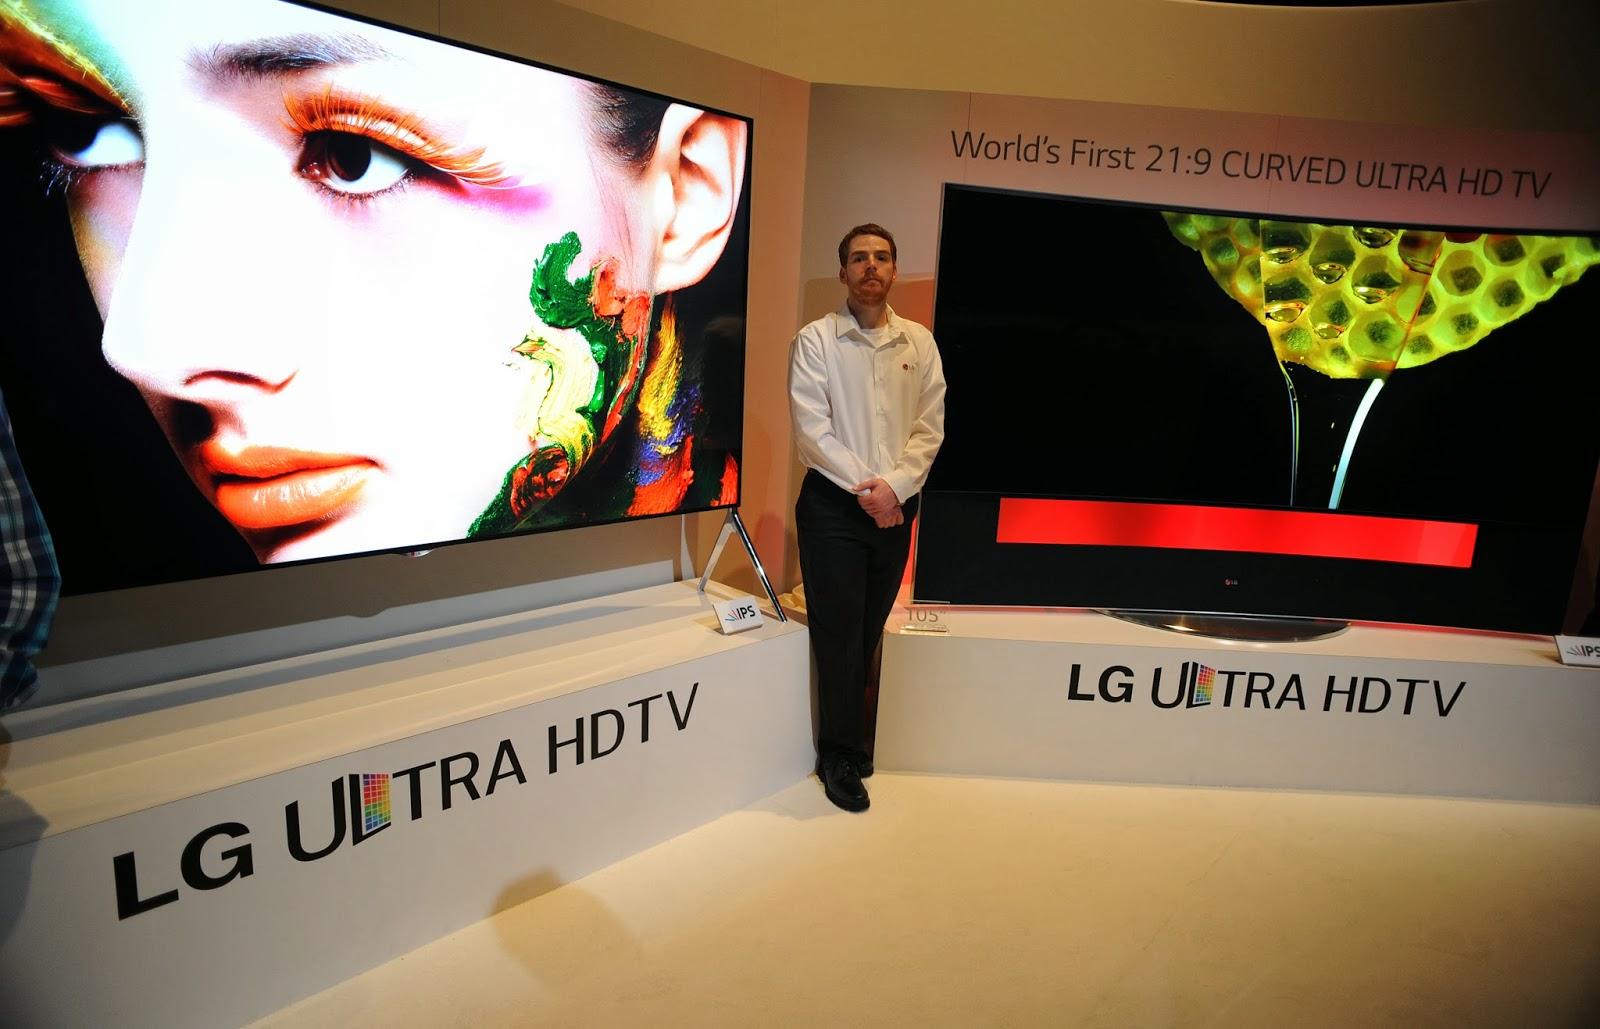 Business, Convention, Curved, Curved Display Screen, Economy, Electronics, Girl, International CES, LG, Mandalay Bay, Men, Nevada, Sales Man, Seller, Technology, TV, UHD, US,